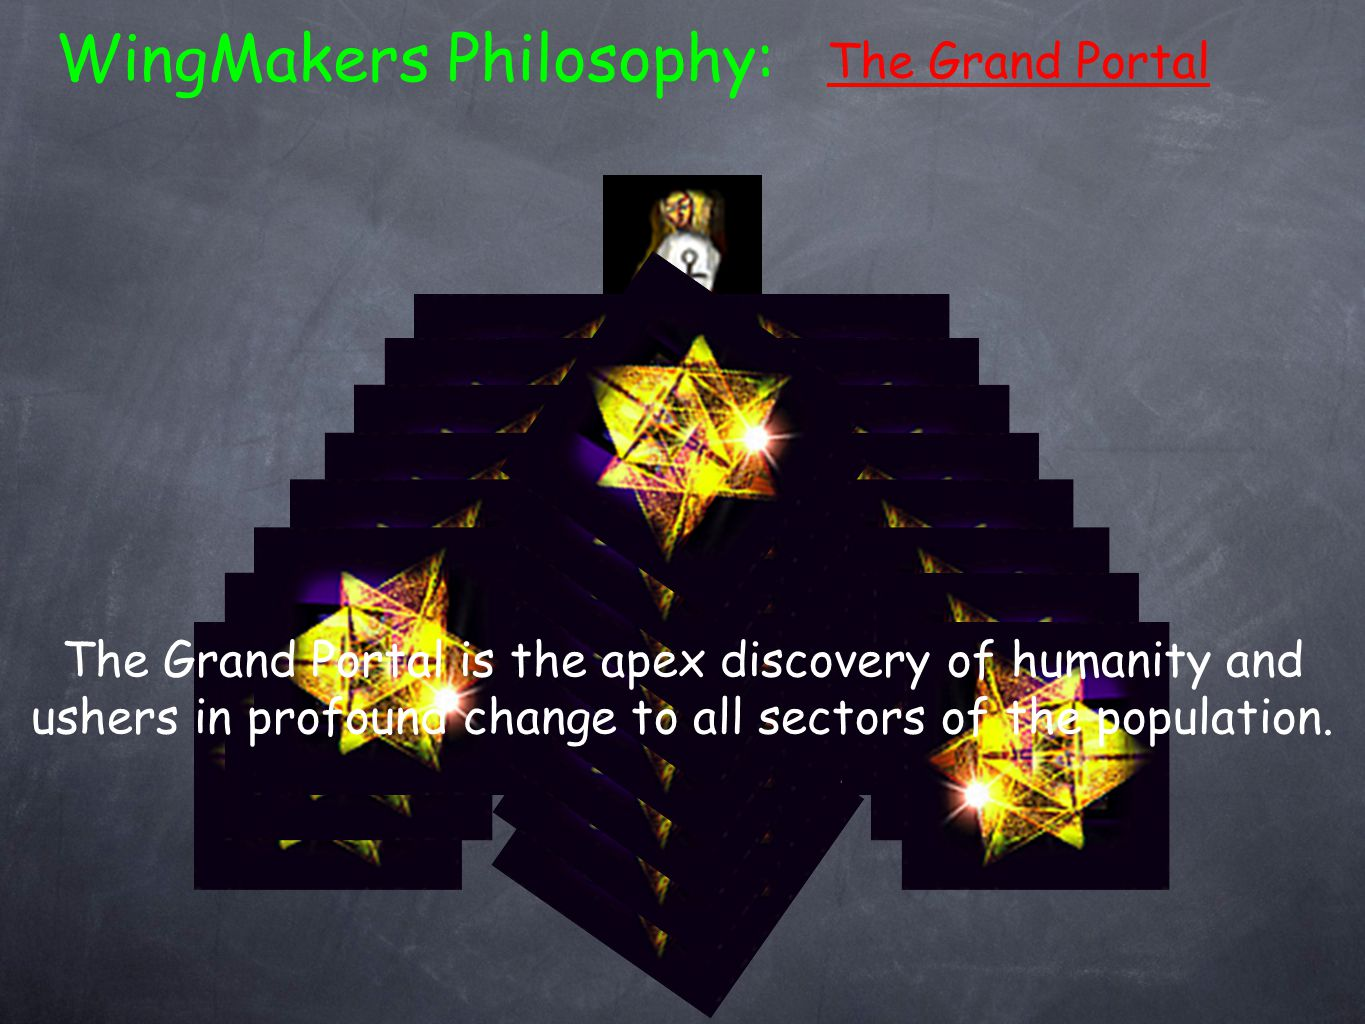 The Grand Portal WingMakers Philosophy: The Grand Portal is the apex discovery of humanity and ushers in profound change to all sectors of the population.